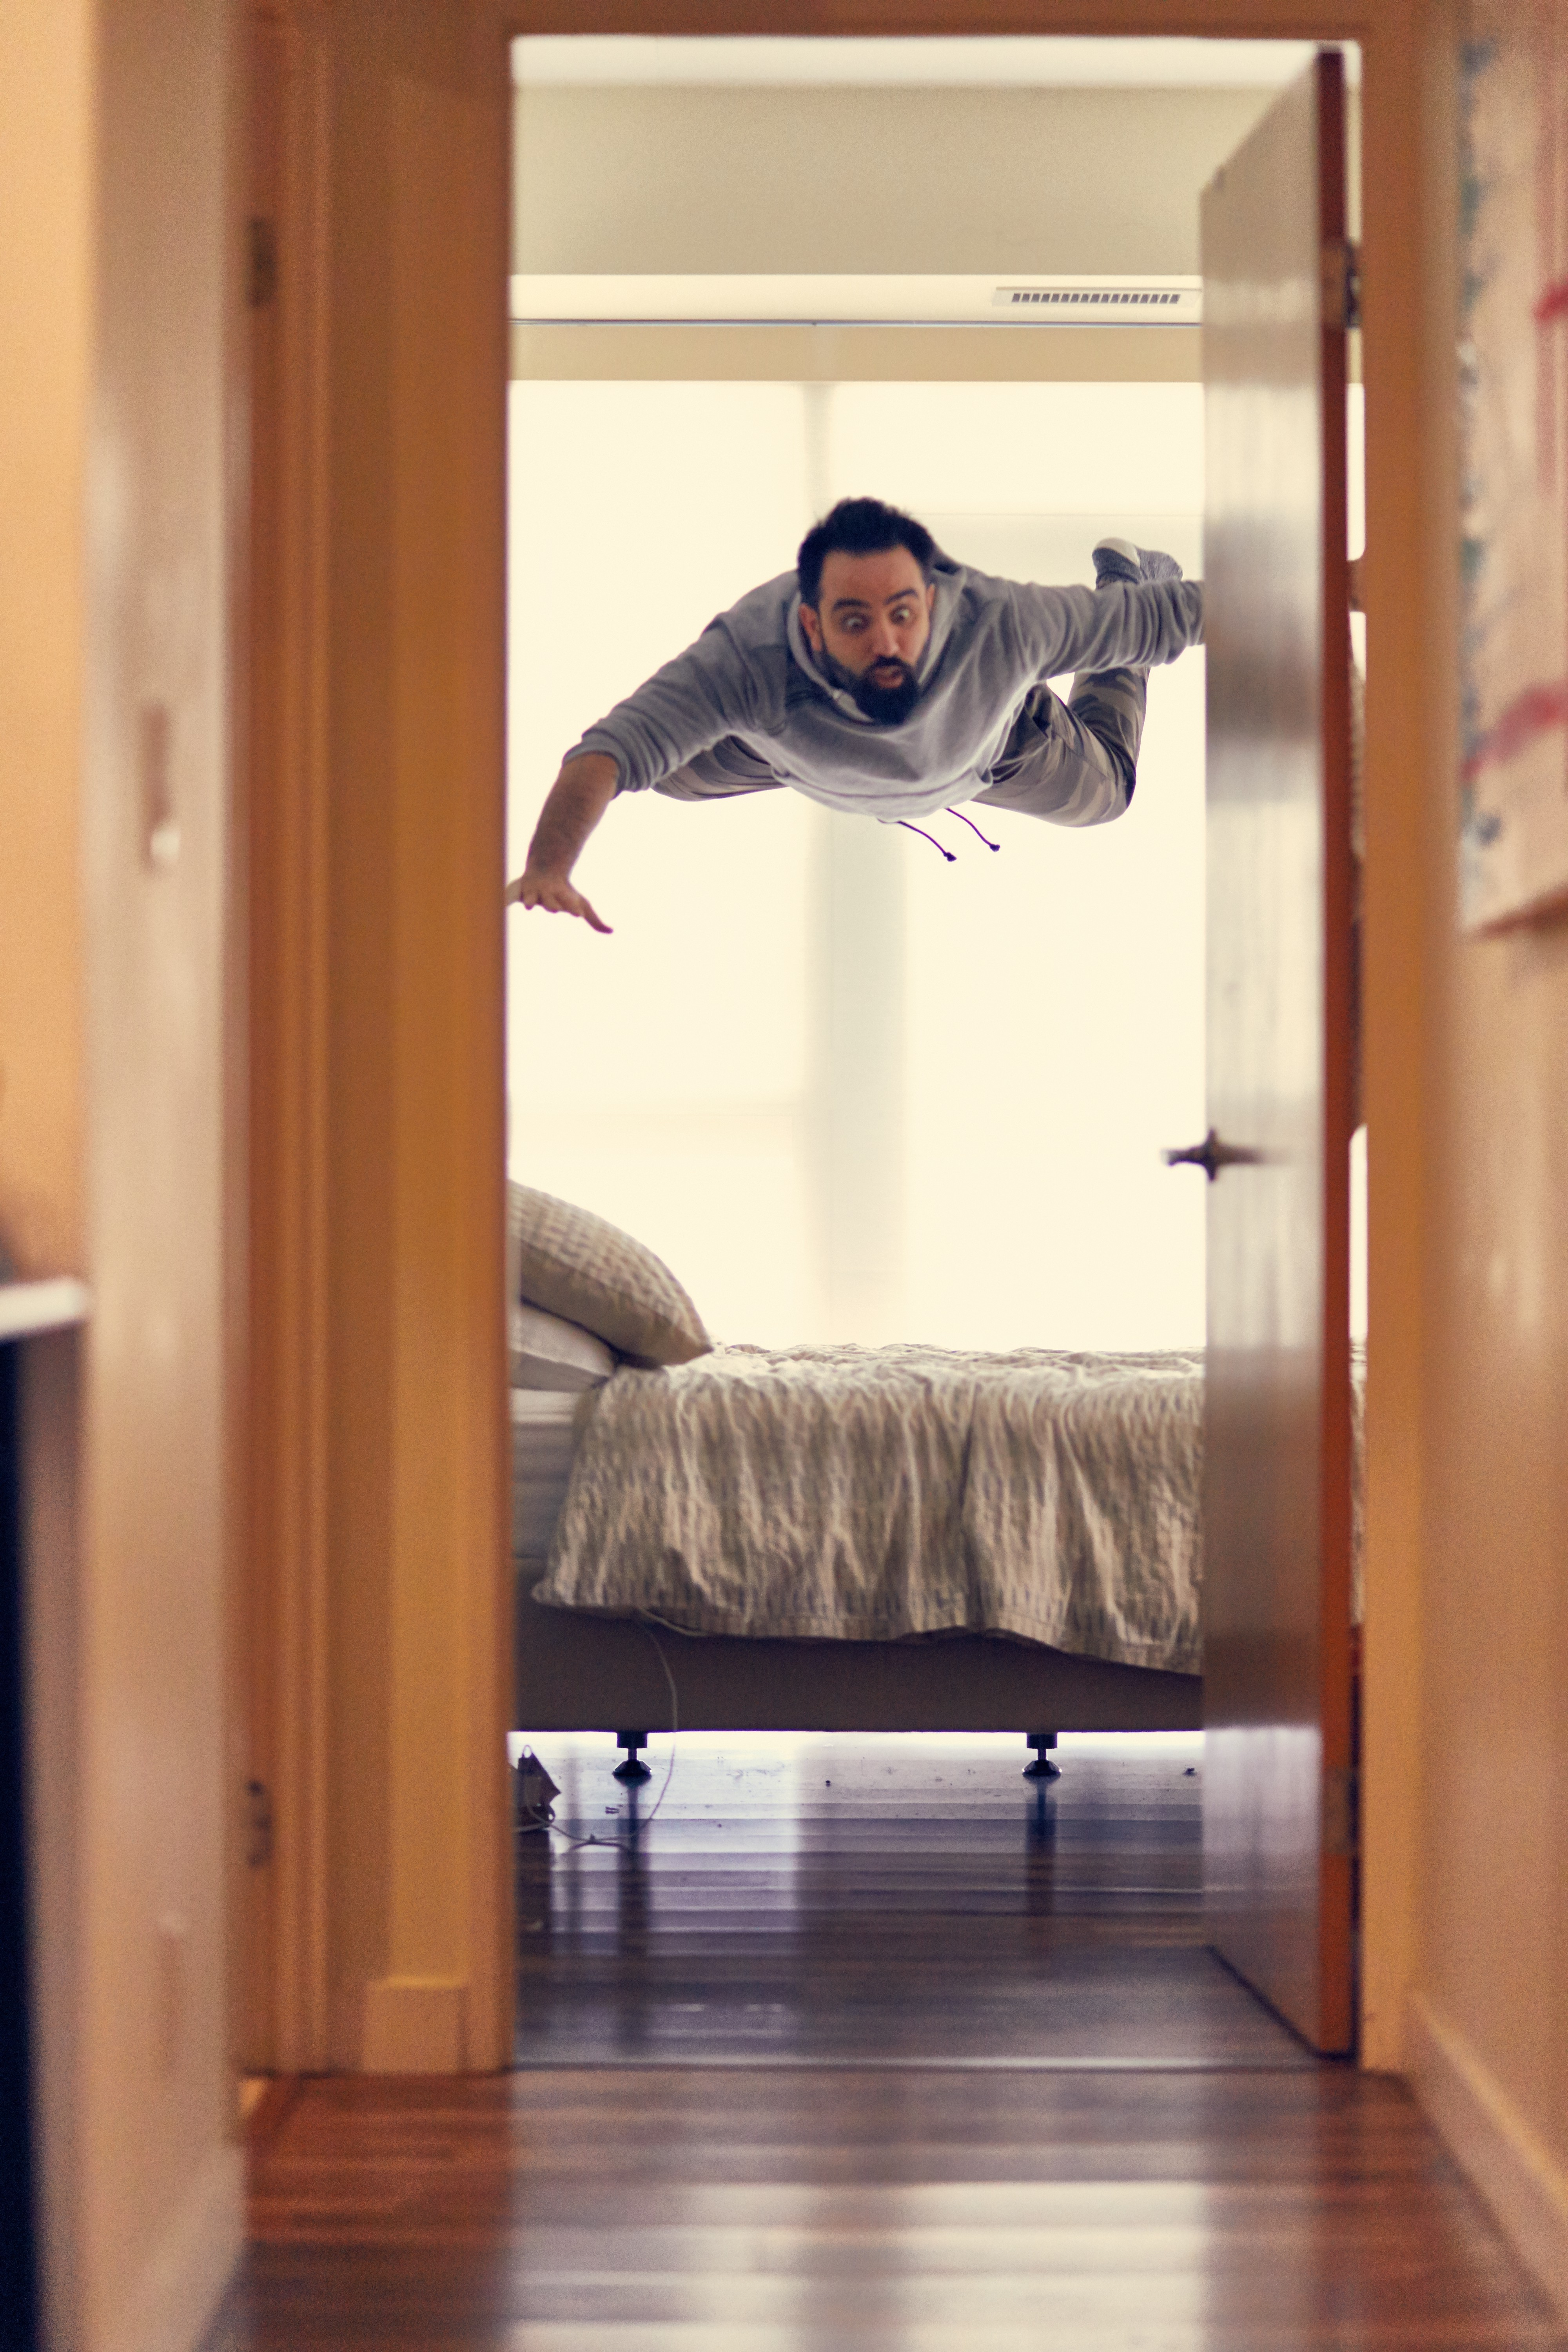 Picture of a man with a surpised look falling towards a bed